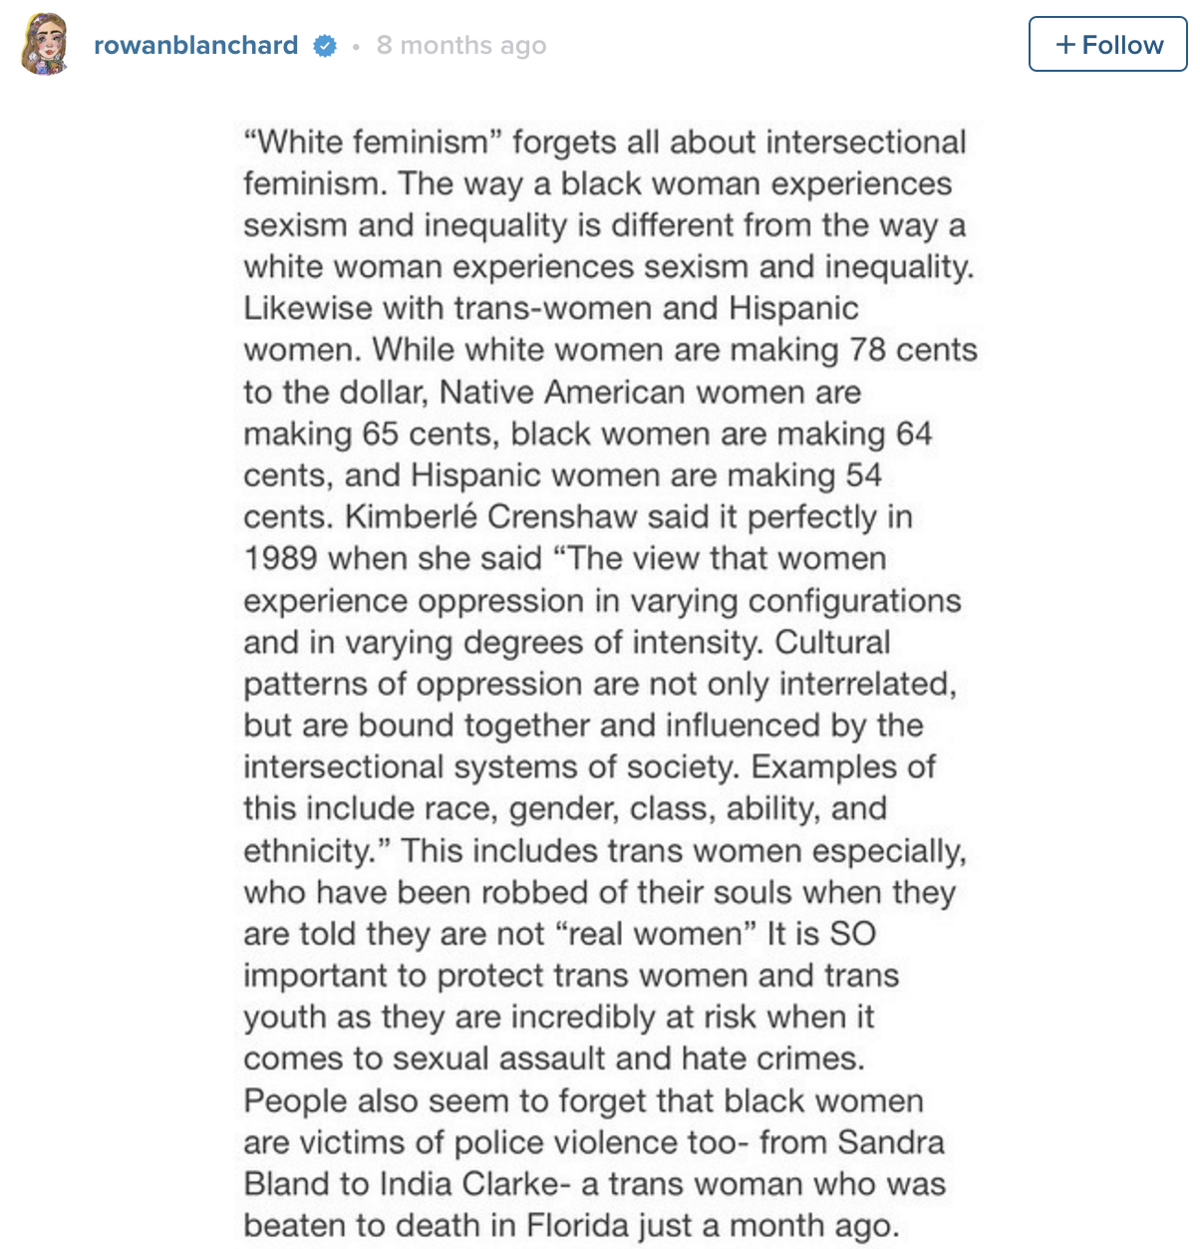 if you re over you re probably wrong about generation z  rowan blanchard photo by disney abc next to a screencap of her instagram essay on intersectional feminism written when she was 13